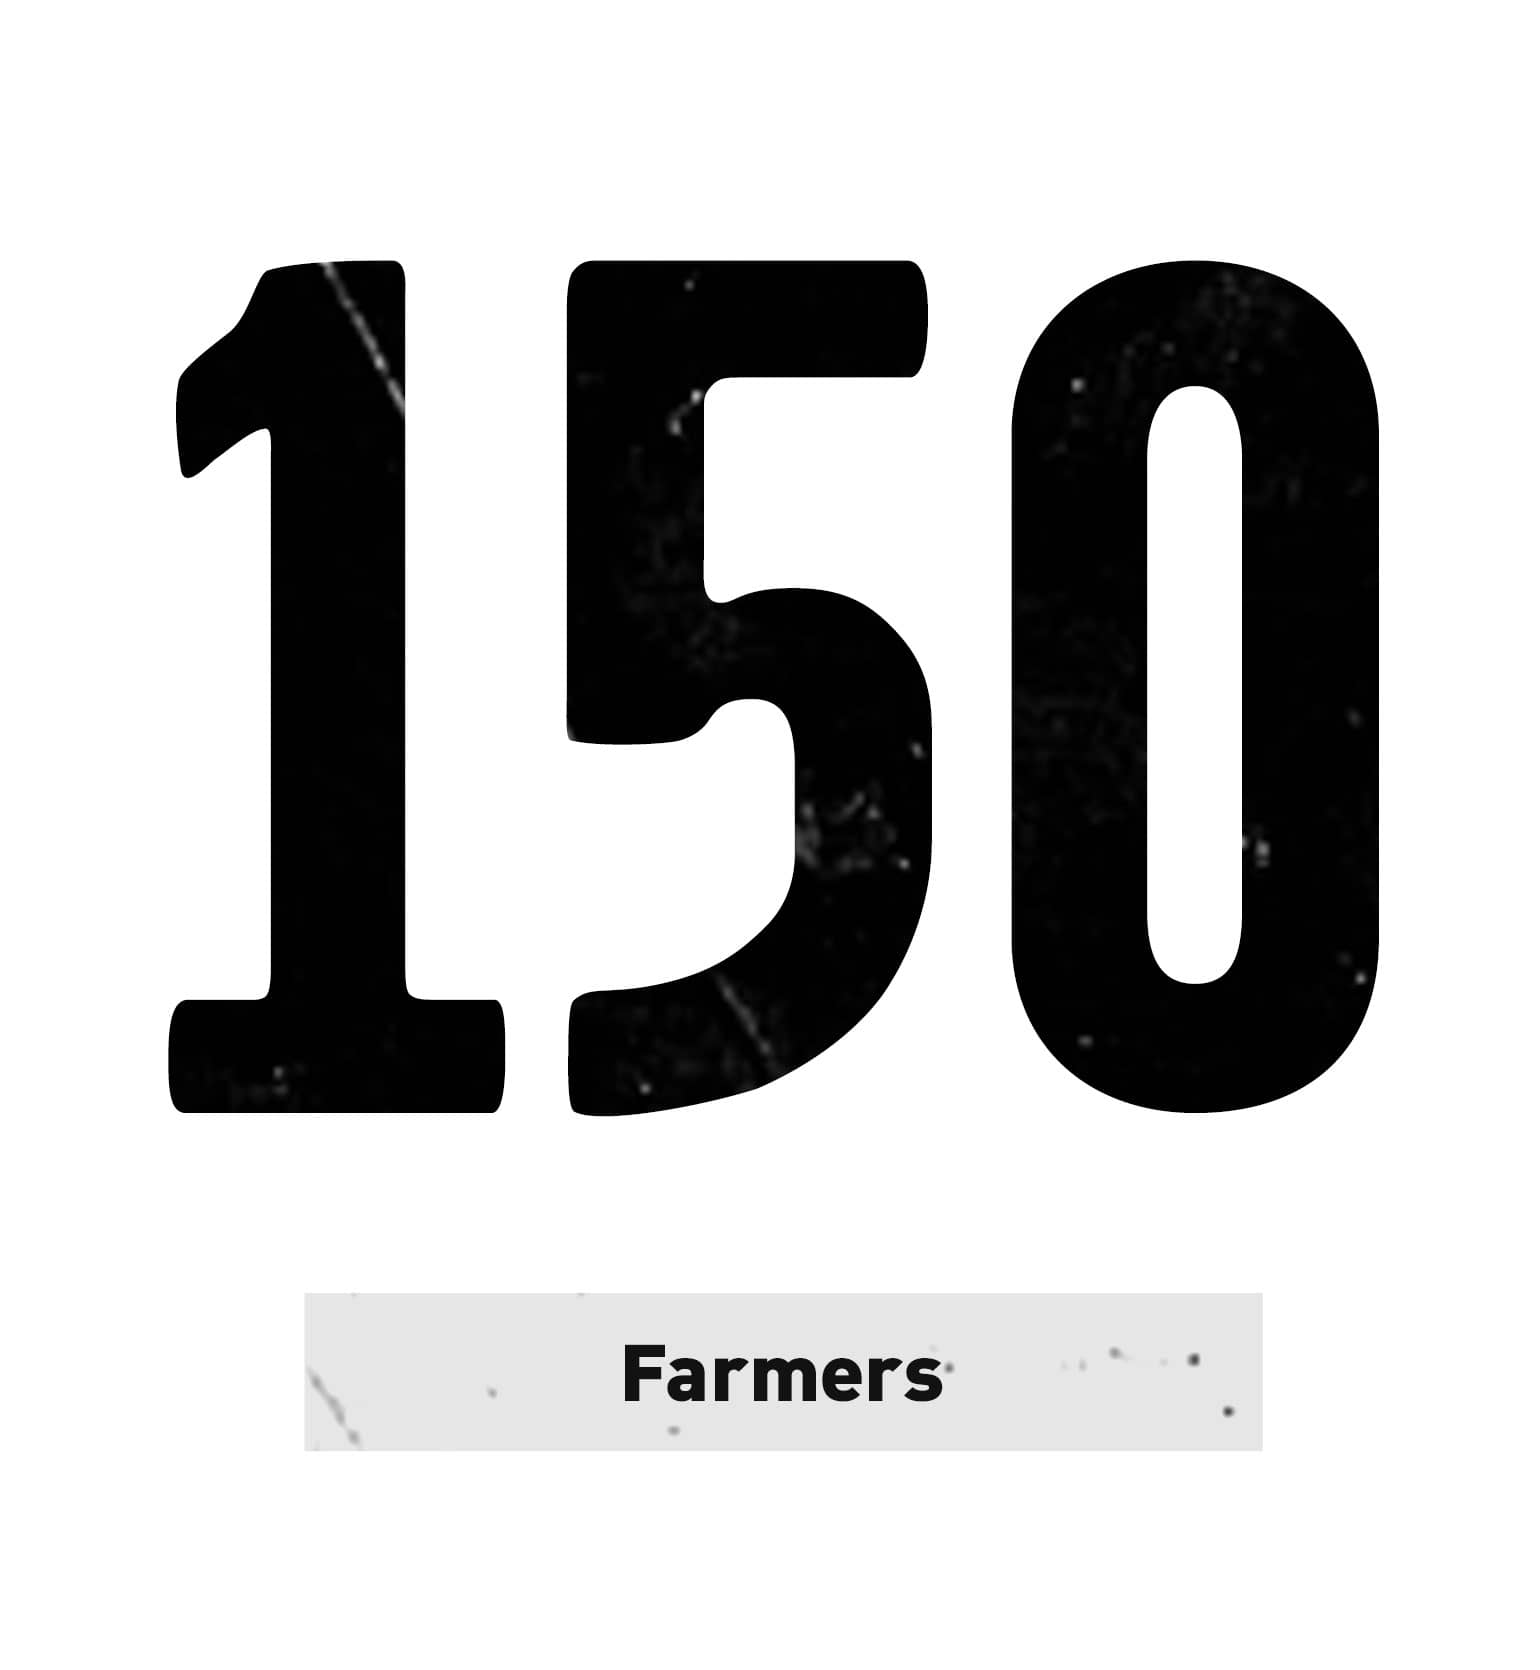 150 Farmers in Organic Farming School